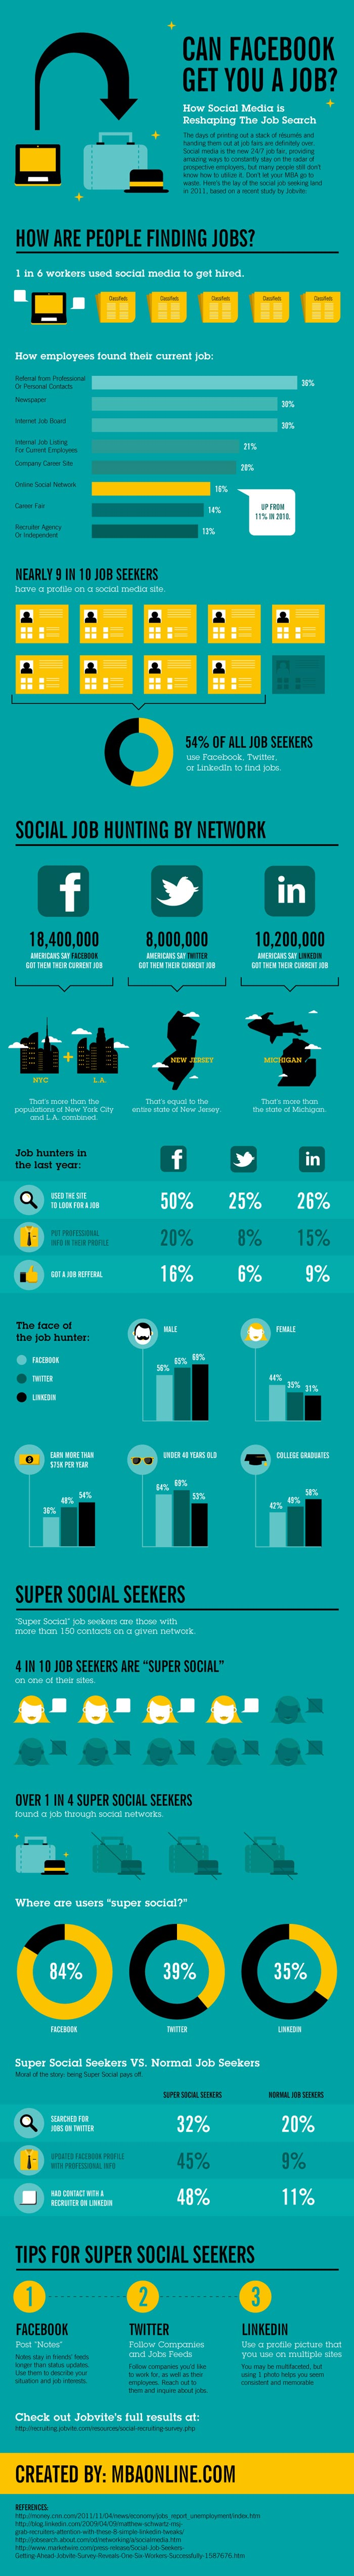 Social Media Job Search Infographic